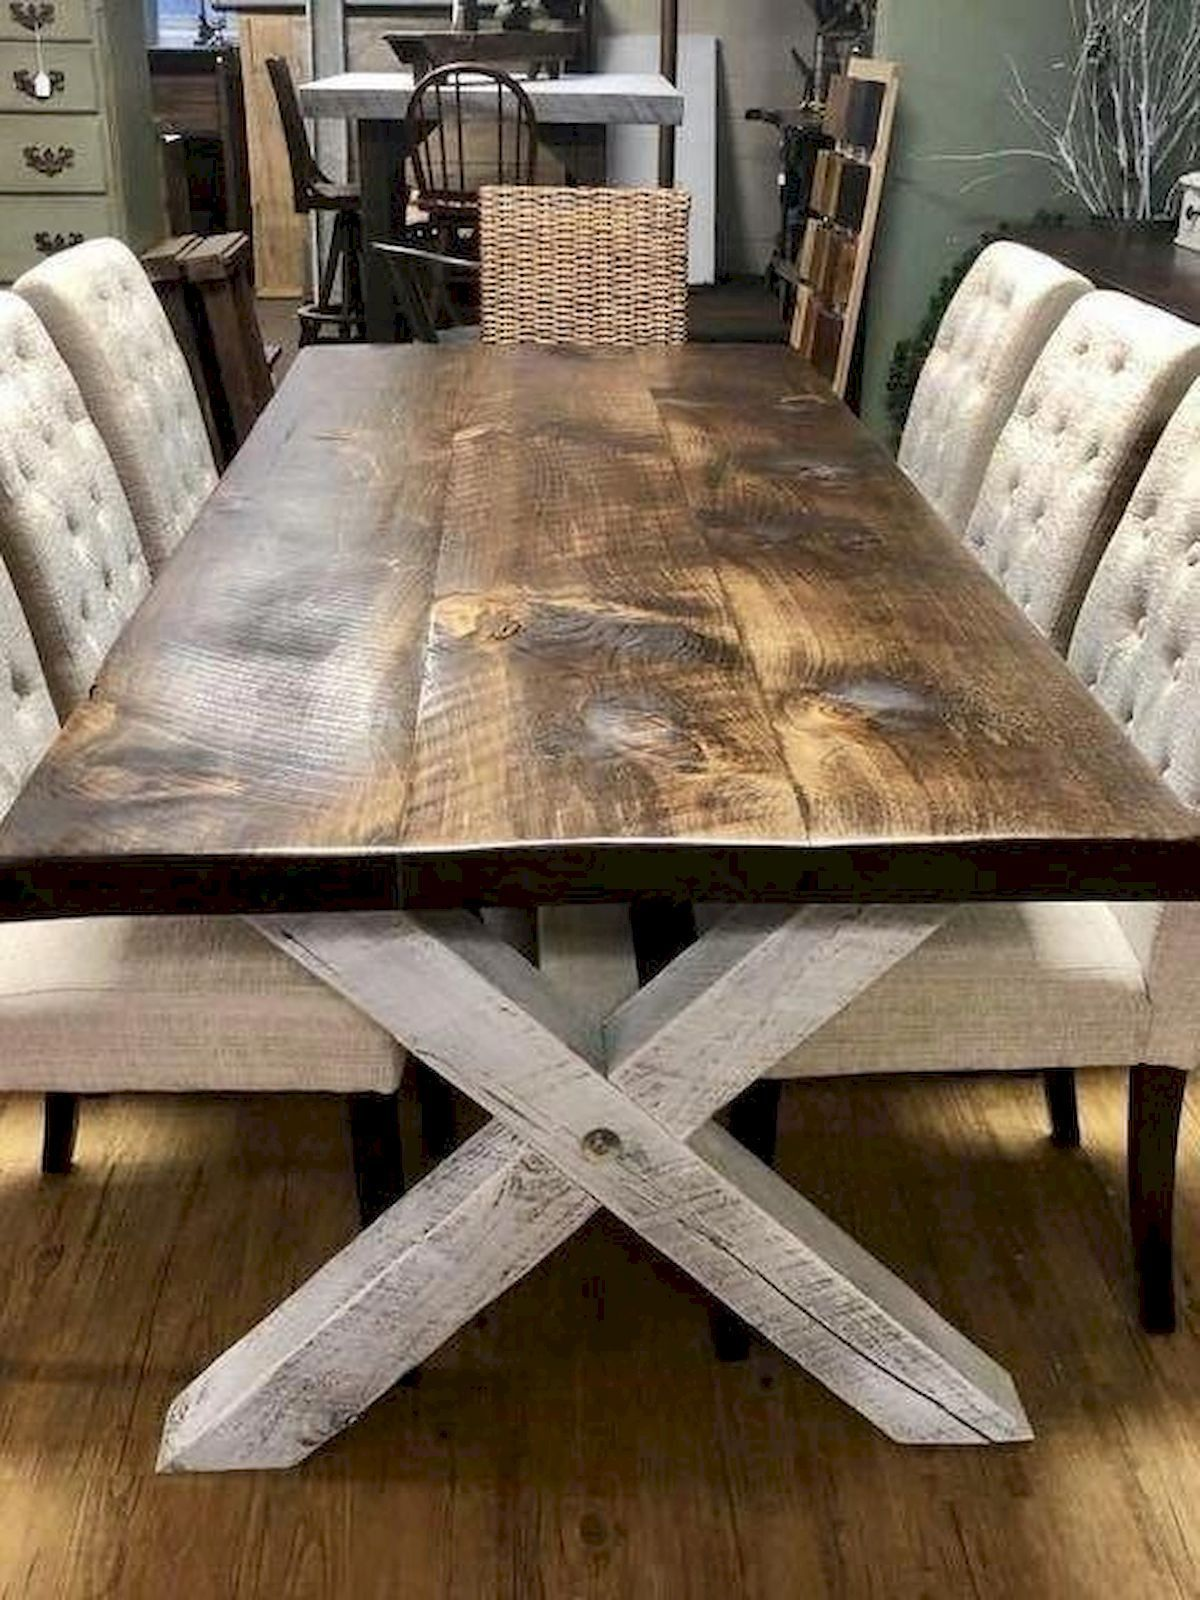 40 Adorable Farmhouse Dining Room Design And Decor Ideas In 2020 Farmhouse Dining Room Rustic Wood Kitchen Tables Dining Room Design